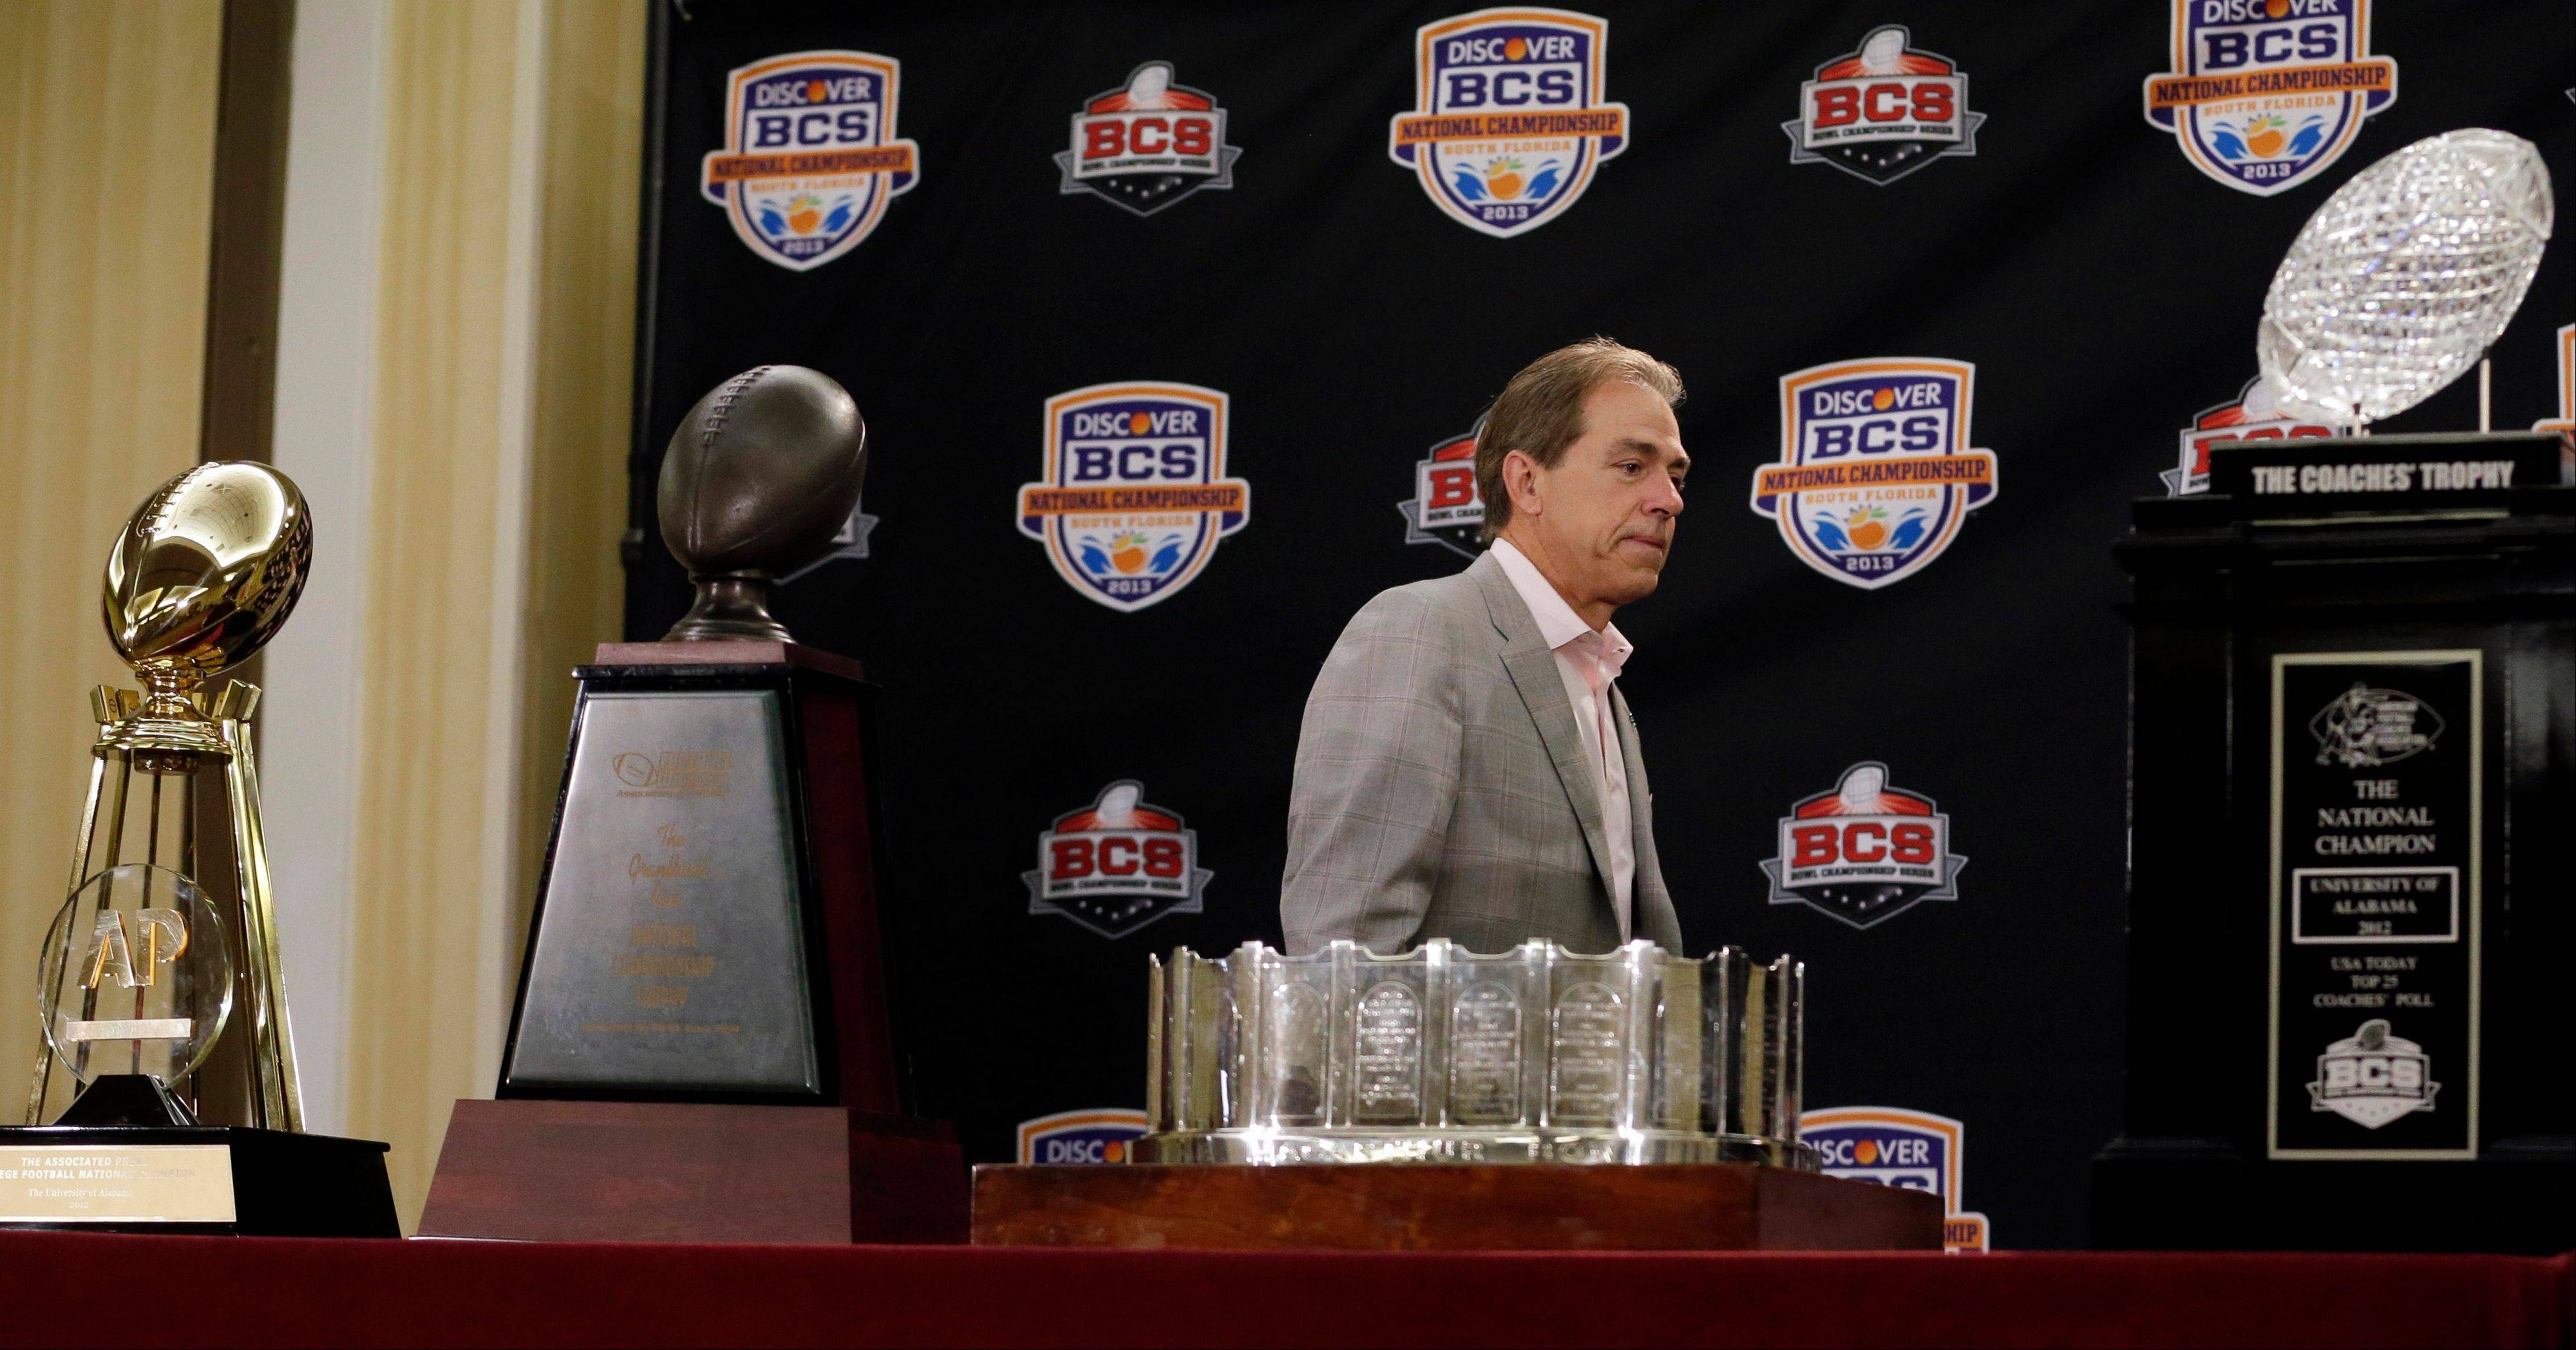 In this Jan. 8, 2013, file photo, Alabama head coach Nick Saban walks past national championship trophies at a BCS National Championship college football news conference in Ft. Lauderdale, Fla. Alabama will begin this season the way it ended the last two � No. 1. Nick Saban and the two-time defending national champion Crimson Tide are top-ranked in The Associated Press preseason college football poll released Saturday as they try to become the first team to win three straight national titles.